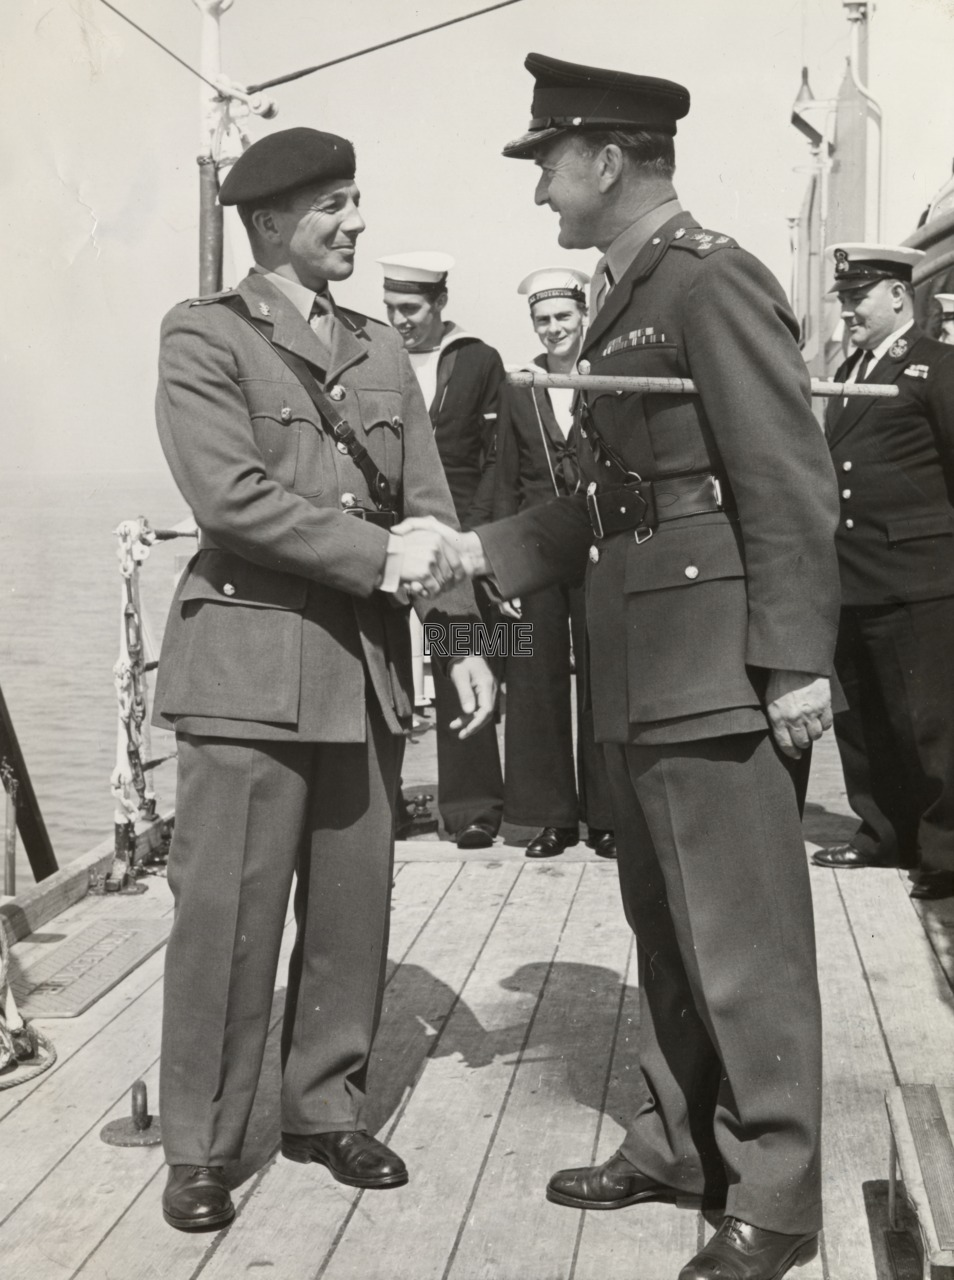 Major J Peacock and Brigadier R T Barr, HMS Protector